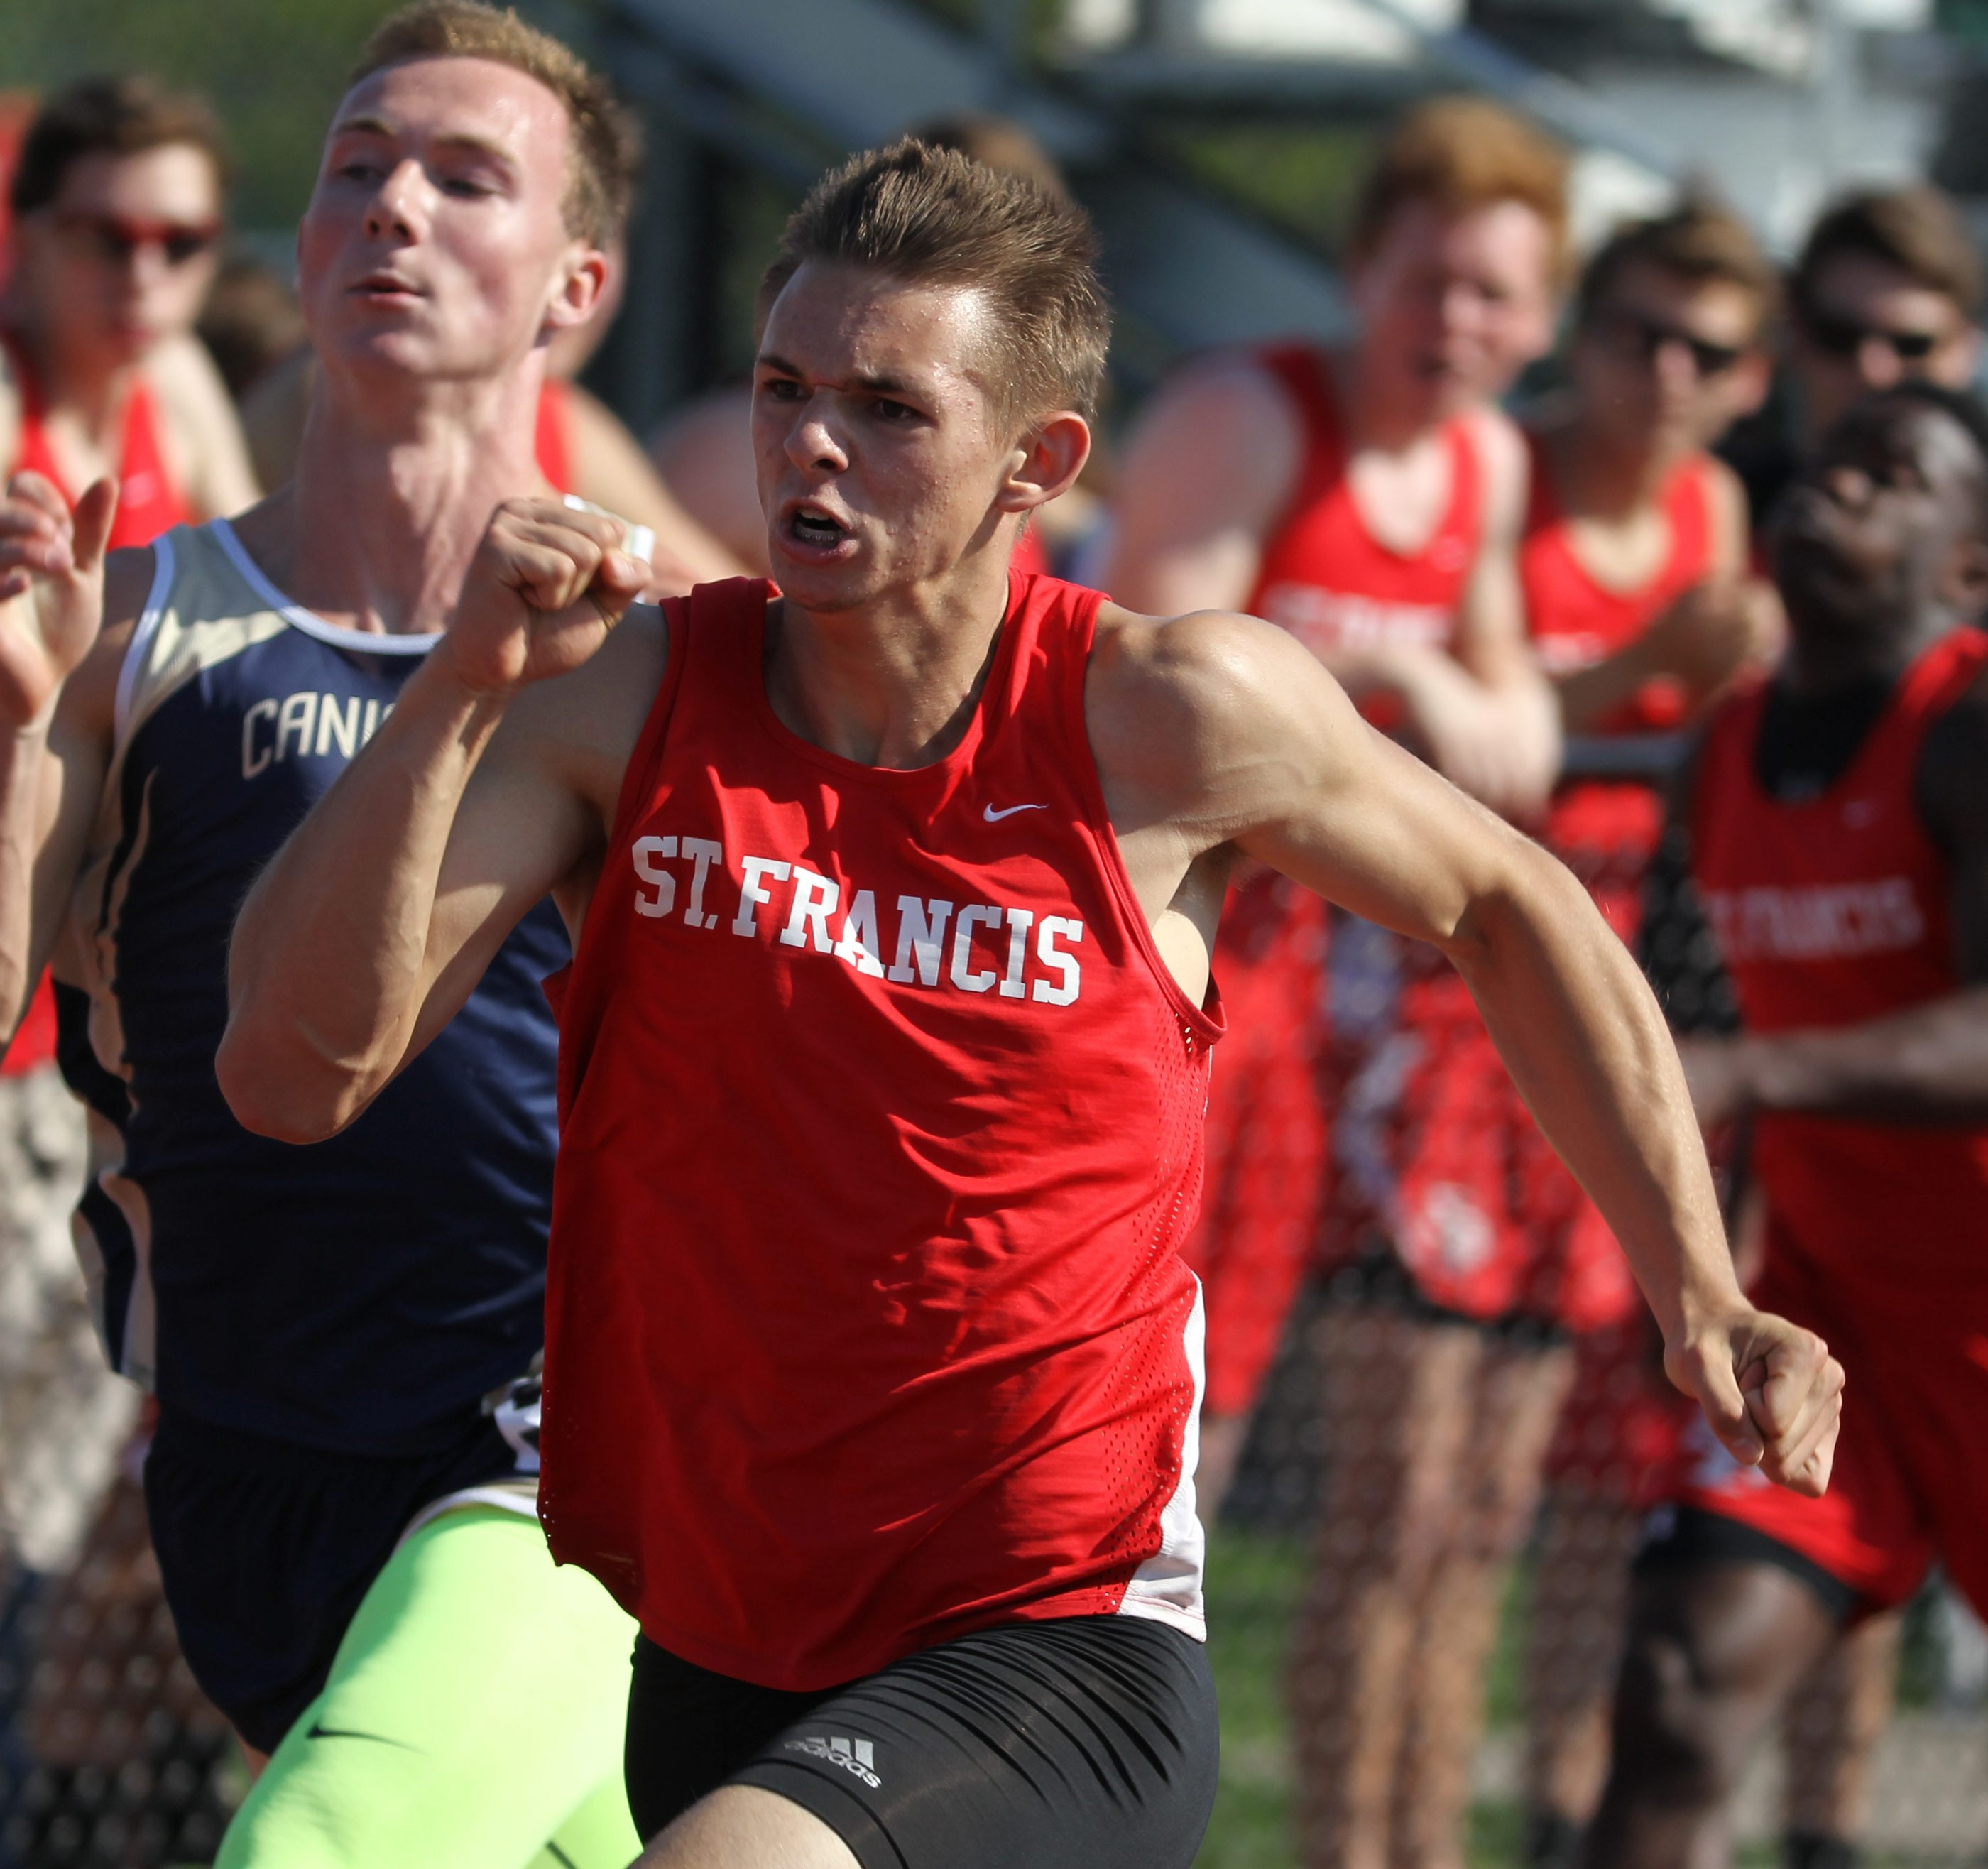 Nick Miller of St. Francis won his heat in the 100 meter dash during the All Catholic track and field championships in West Seneca on Monday.